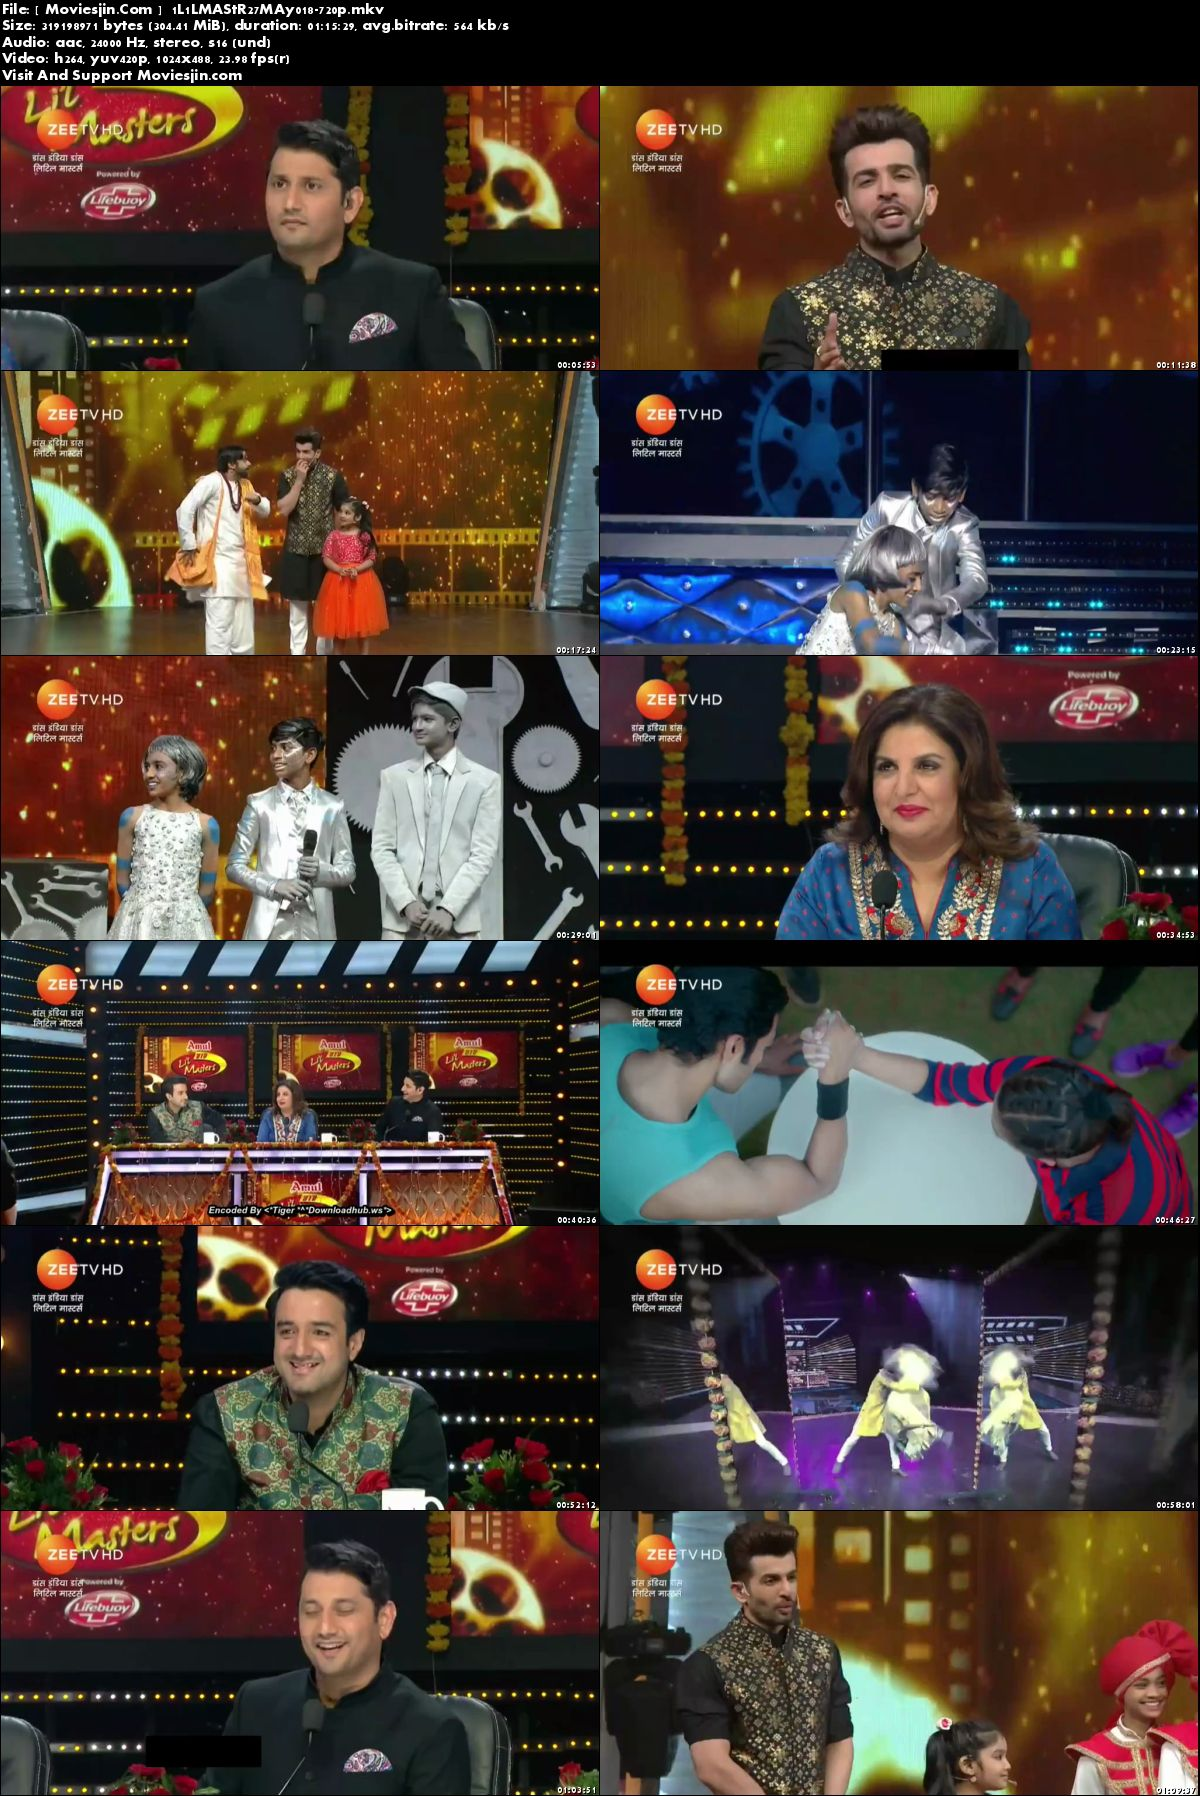 Watch Online DID LiL asters S04 27th May 2018 TvRip 305MB 480p Full Download mkvcage